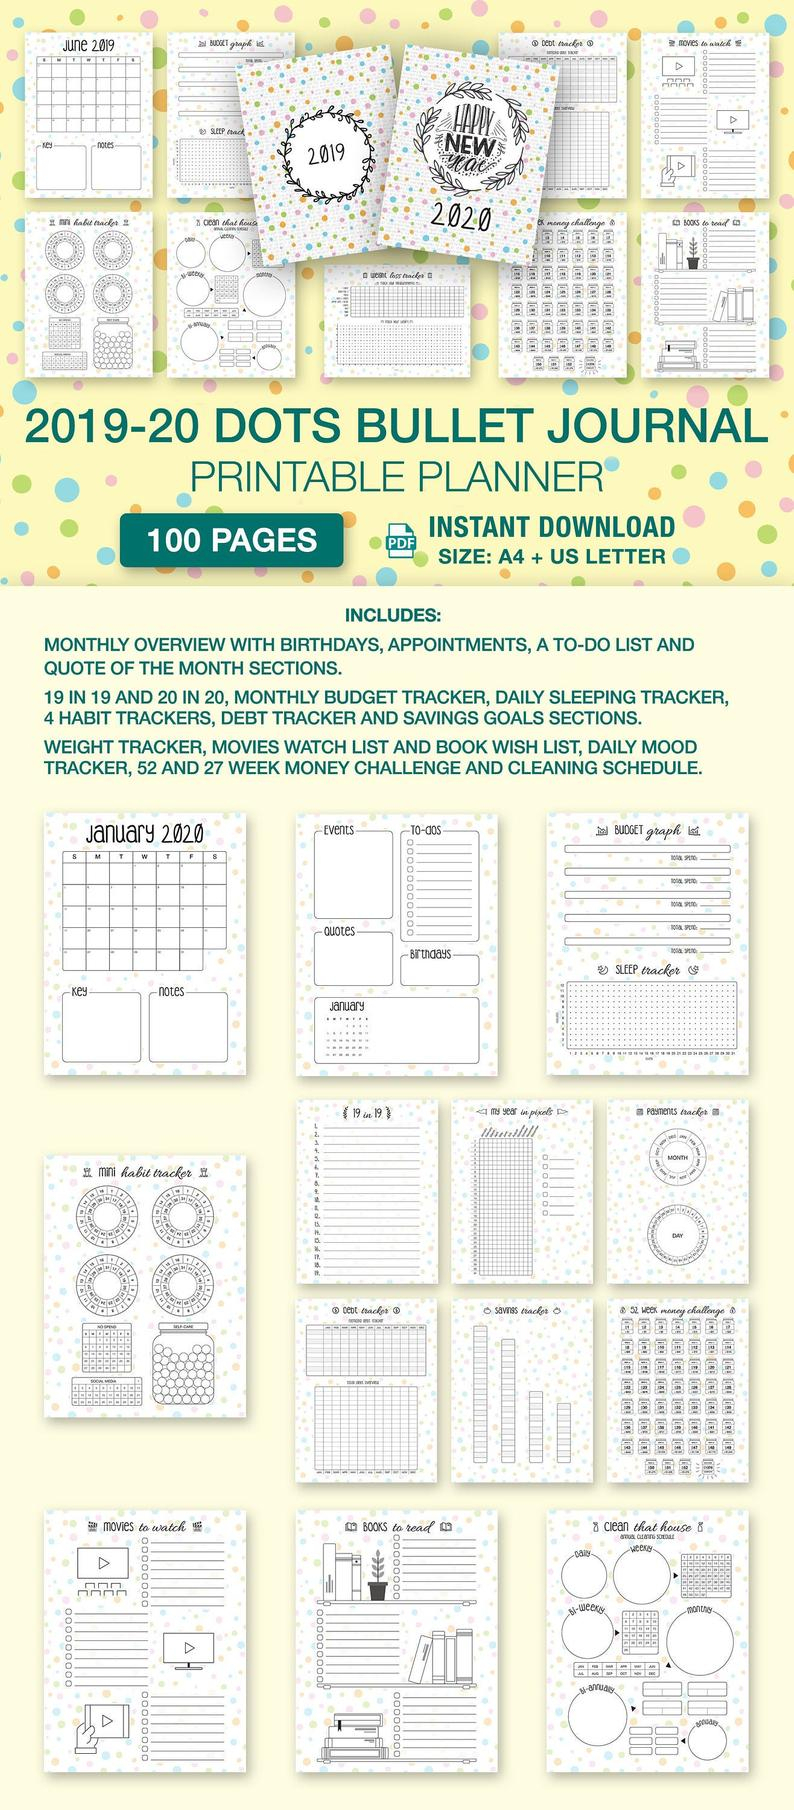 Sale 2019-2020 Dots Bullet Journal A4 & Us Letter: Printable 18 Month  Starter Kit 100 Page Calendar Planner Budget Weight Loss Habit Tracker